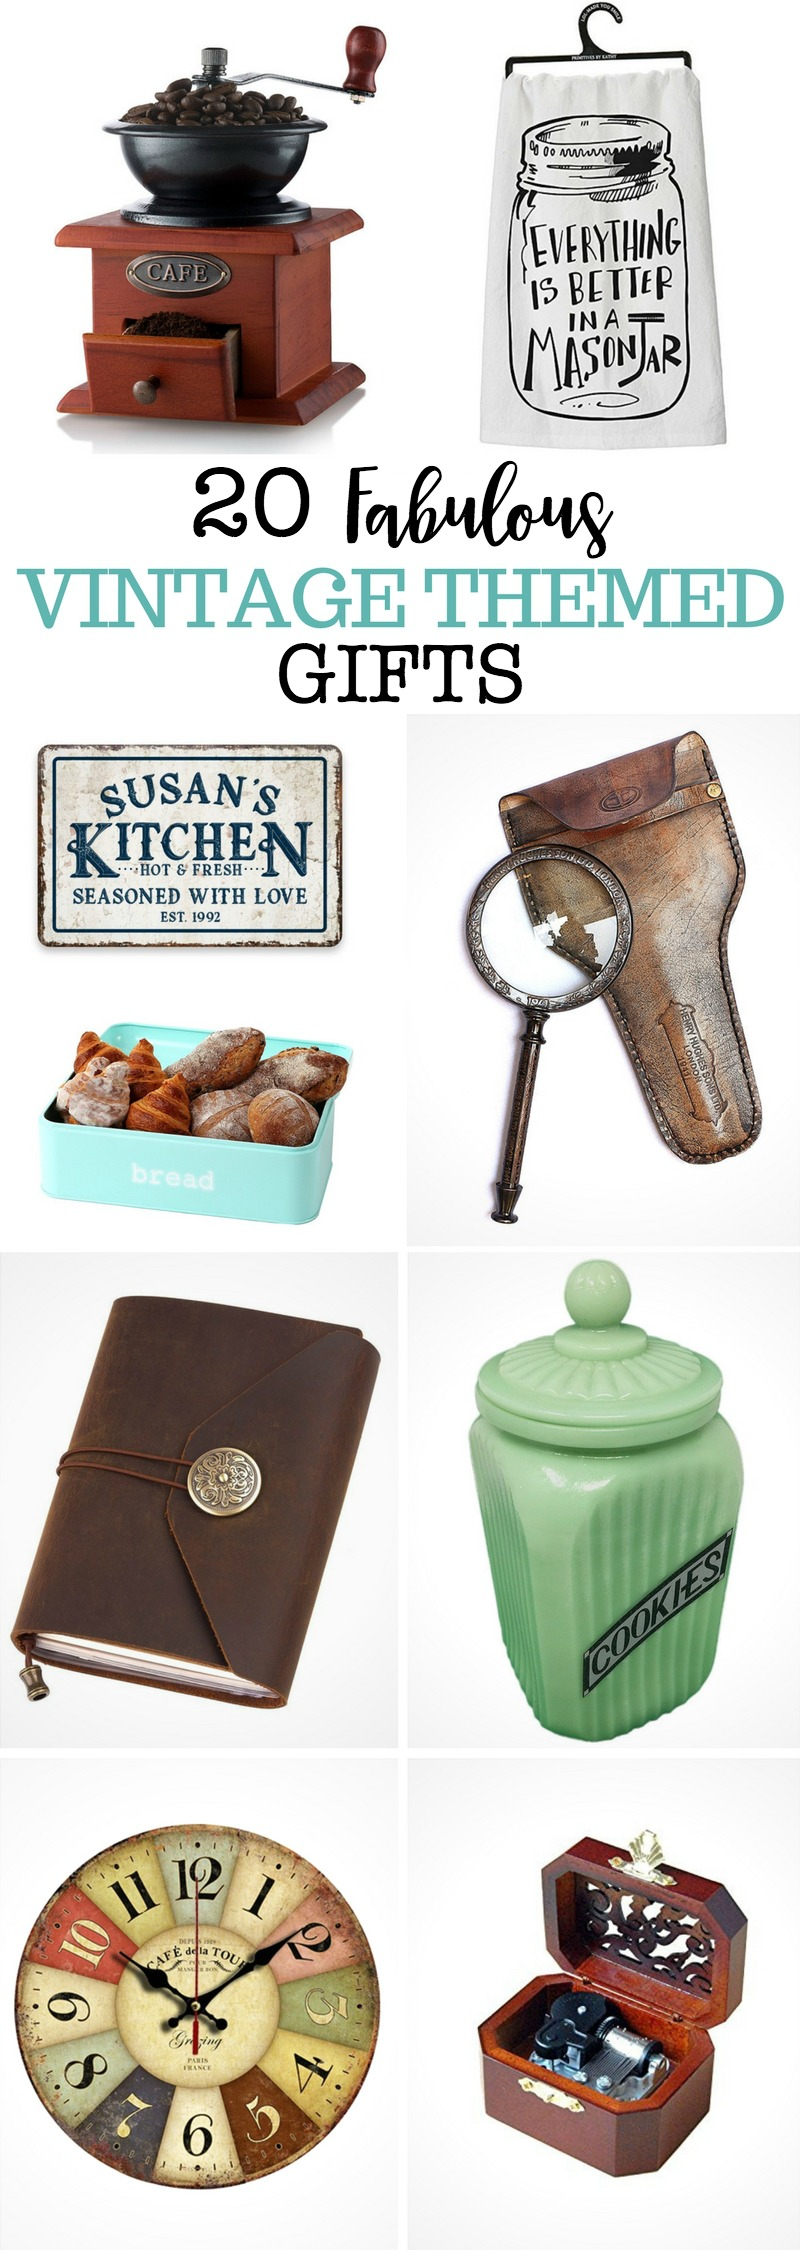 20 Fabulous Vintage Themed Gifts | Yesterday On Tuesday